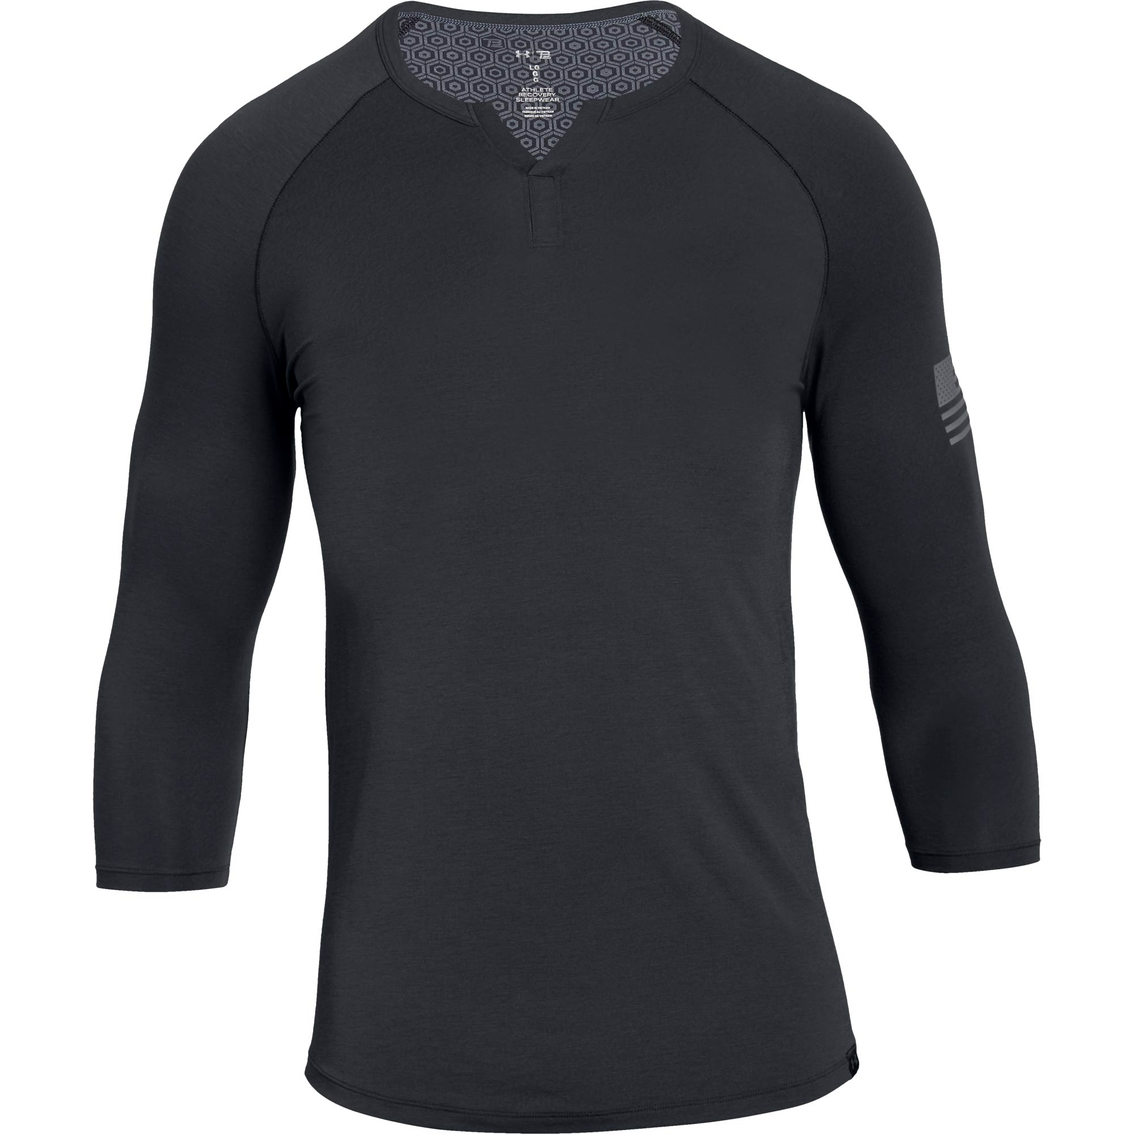 ab332324eac Under Armour Men s Athlete Recovery Sleepwear Henley